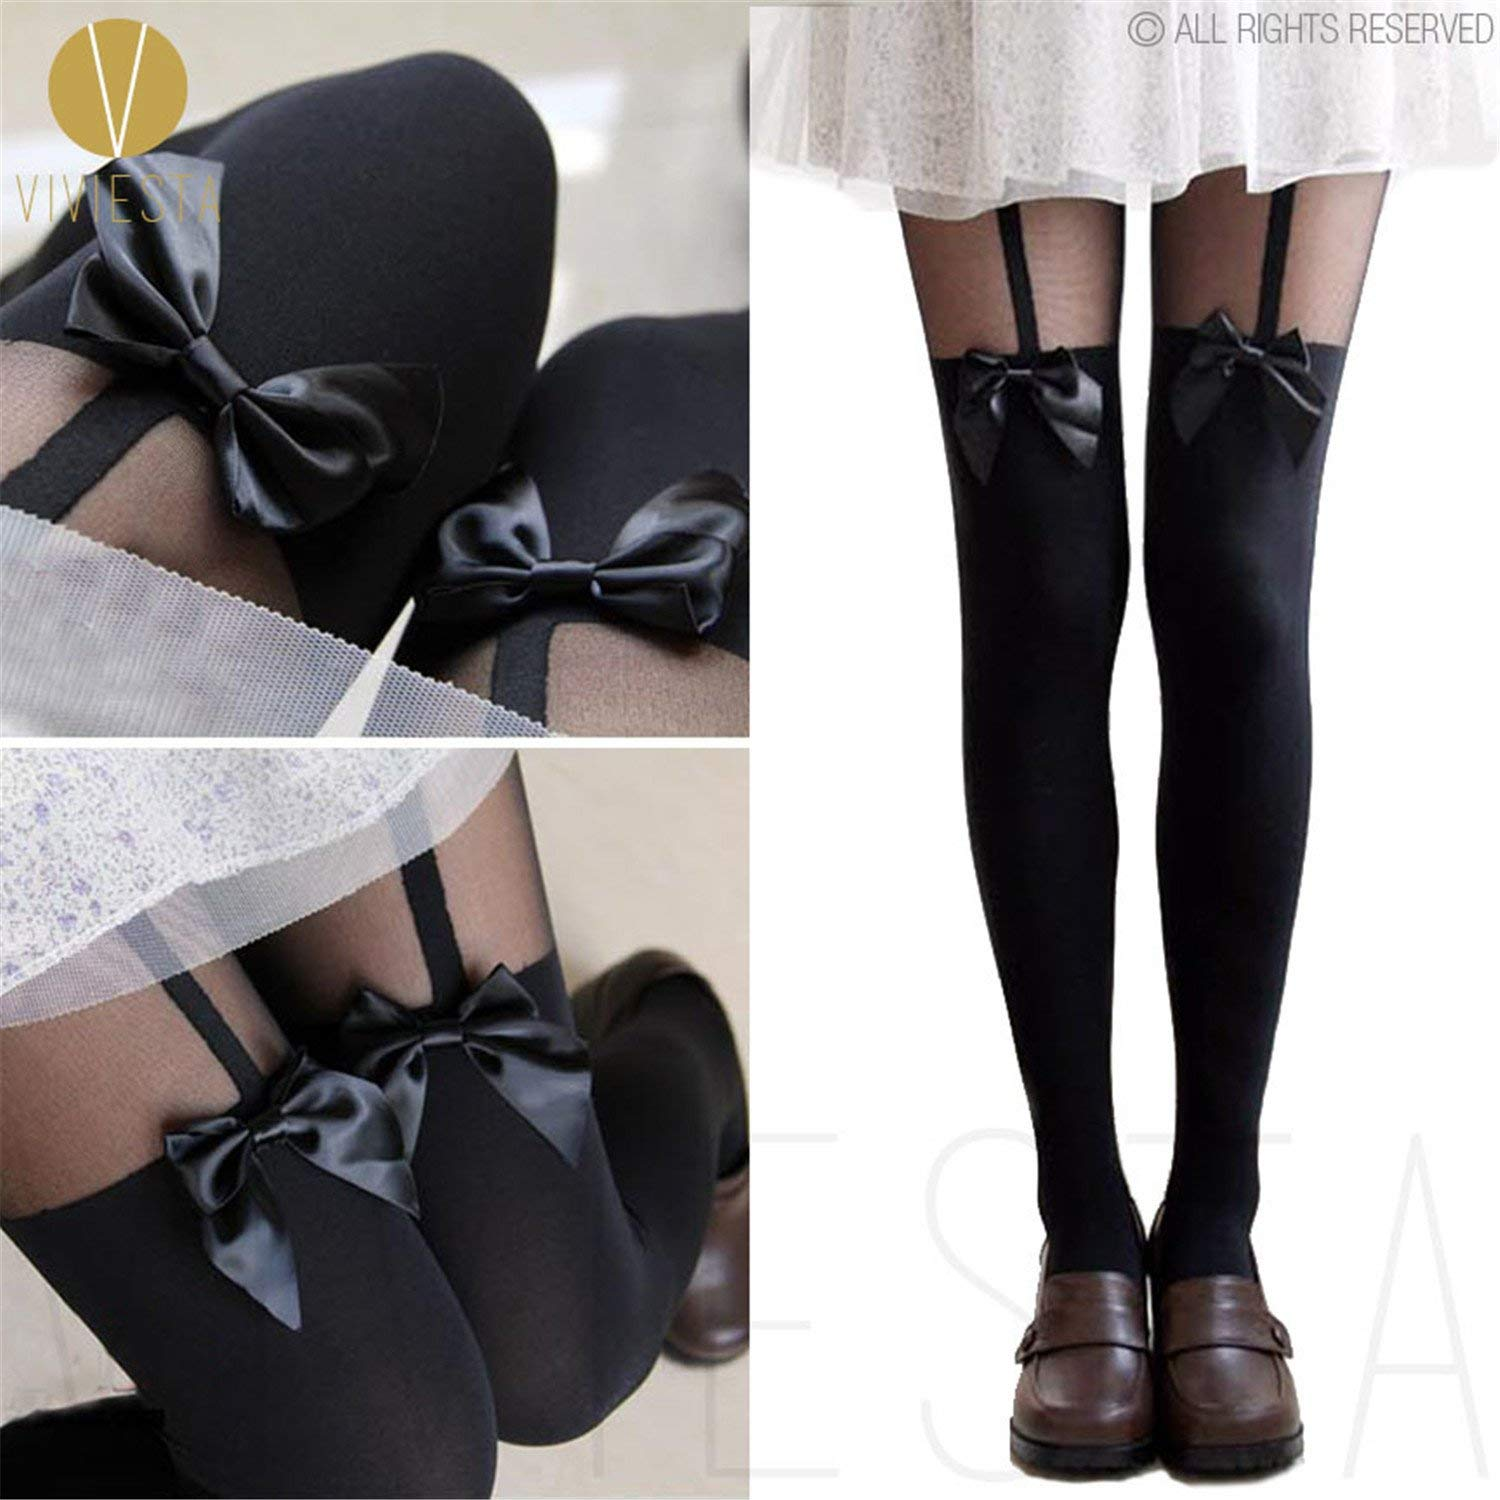 7eafaf06e3c Get Quotations · Dormery TIGHTS - 120D + 30D Sexy Black Sheer Heart Bow  Stripe Over The Knee Pantys